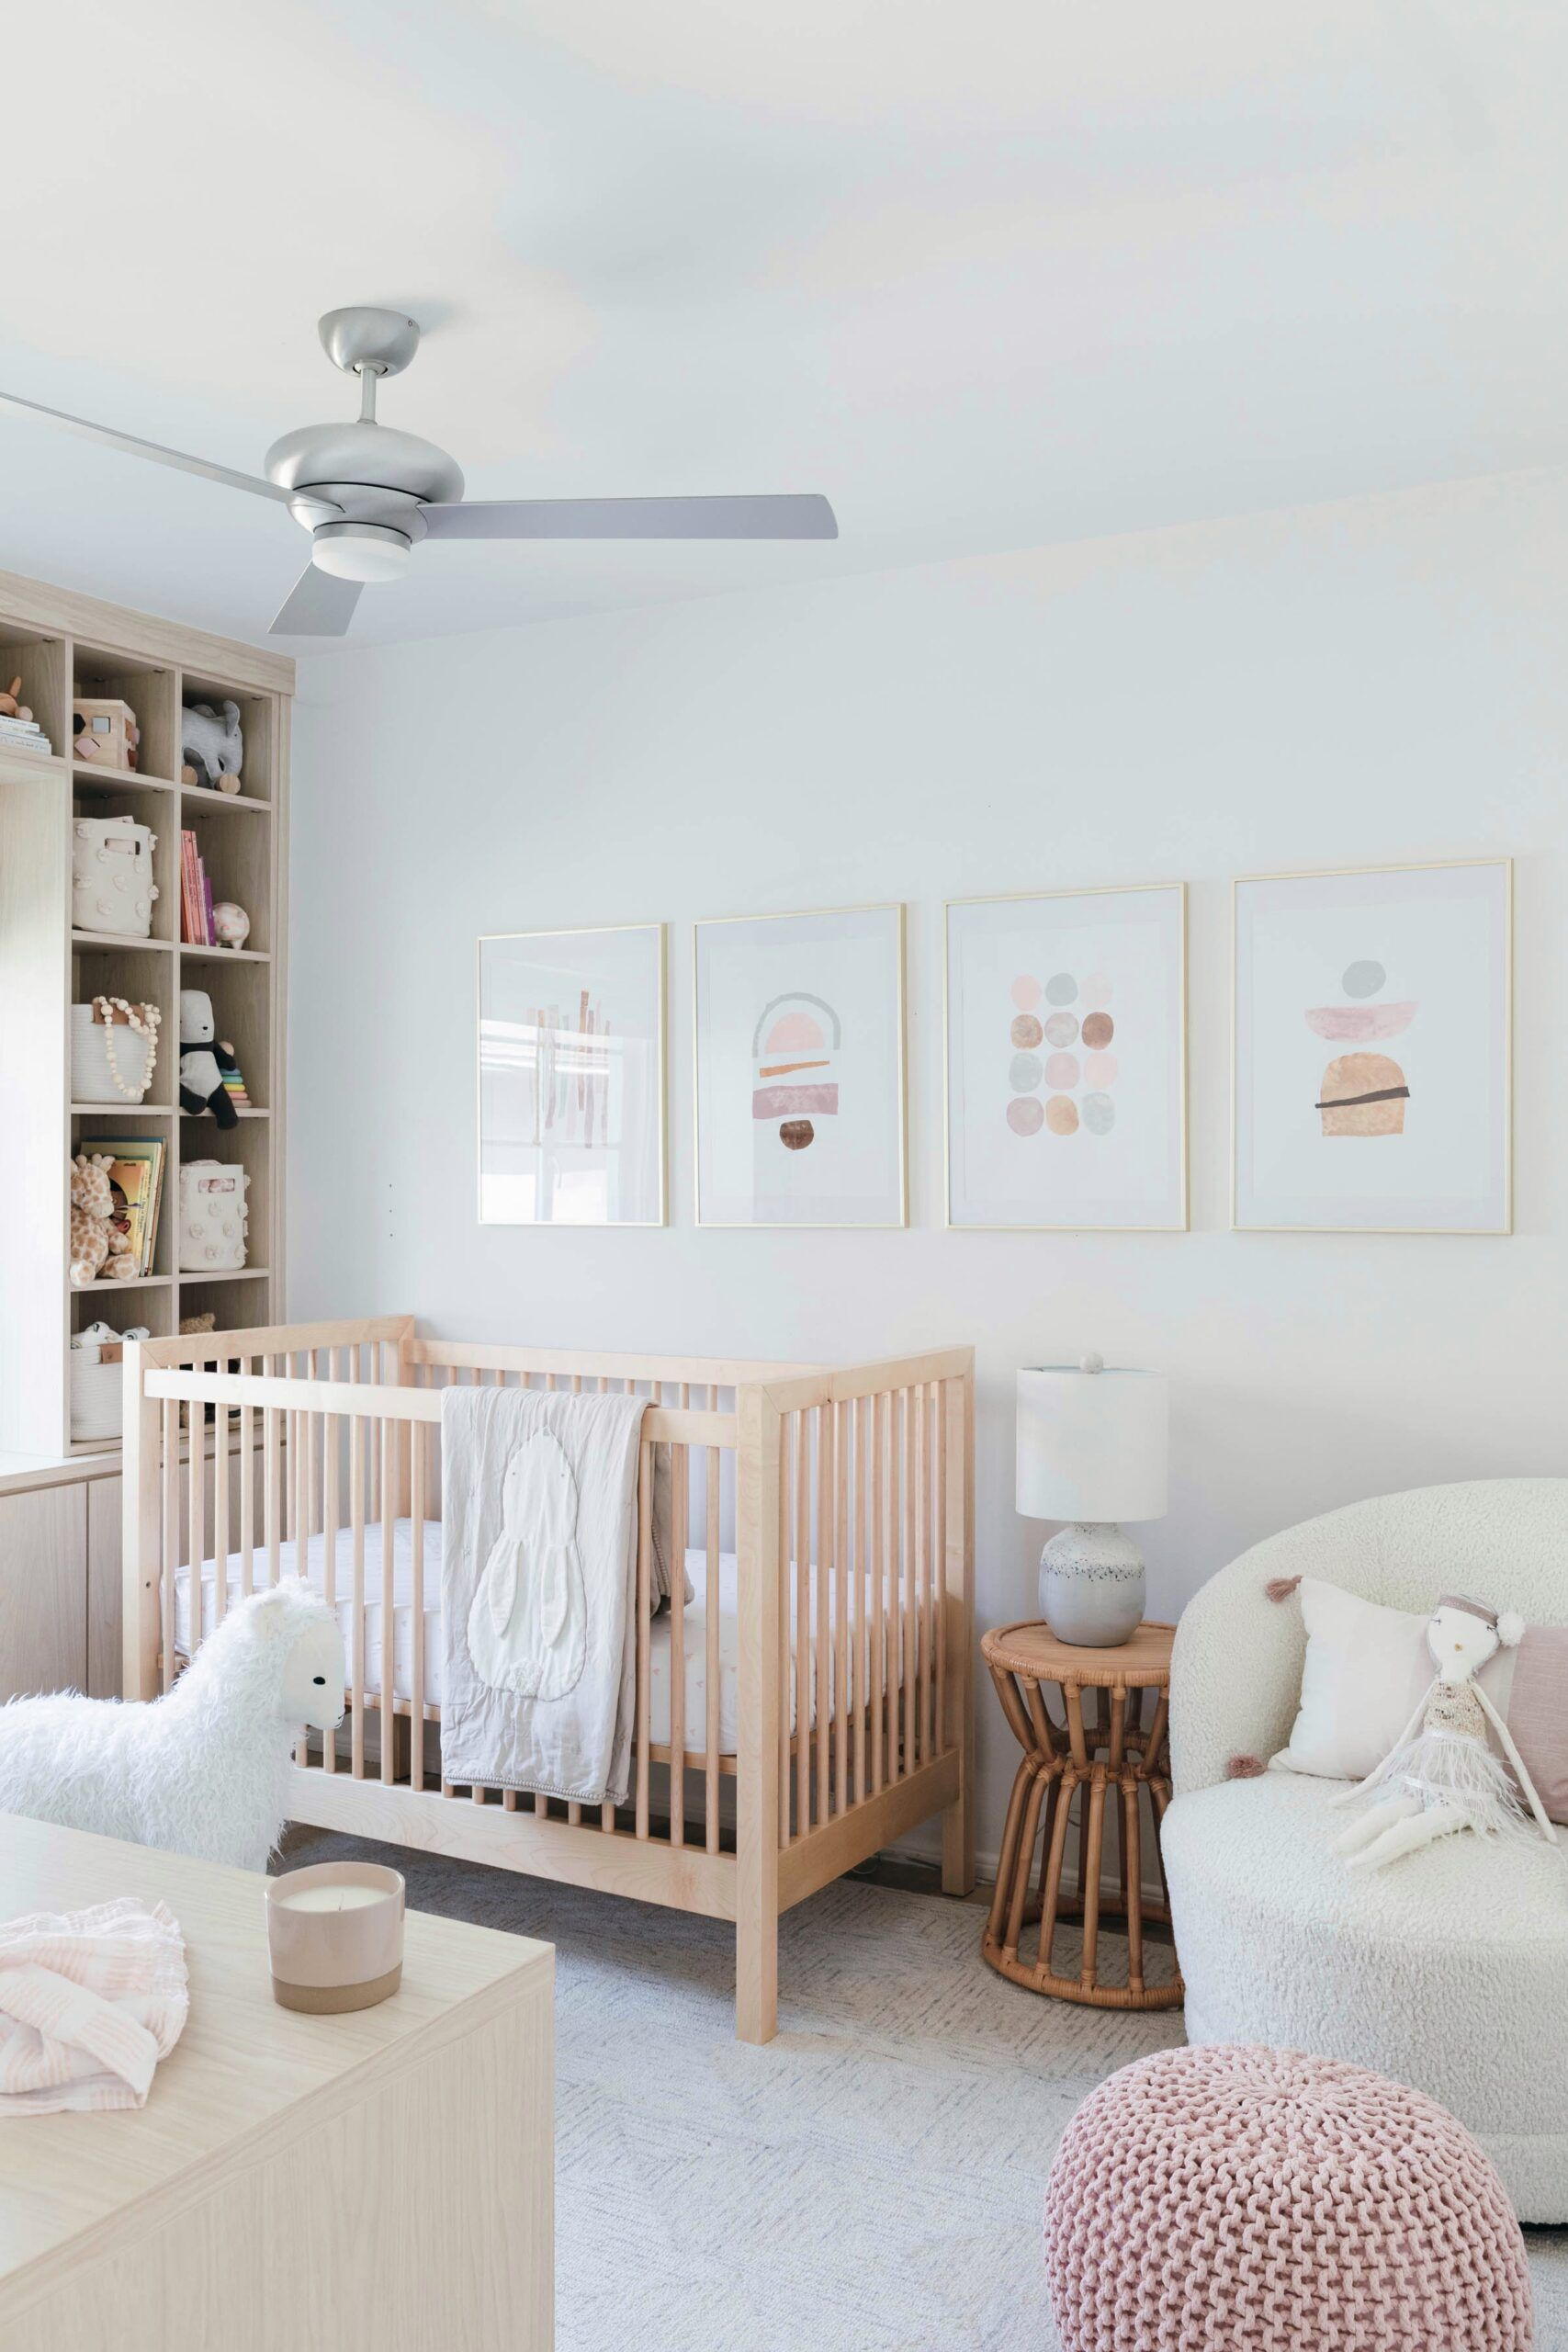 Modern Girl Nursery Design with Sweet Crate and Kids Touches - Anne Sage in  2020 | Modern girl nursery, Nursery design girl, Small space nursery